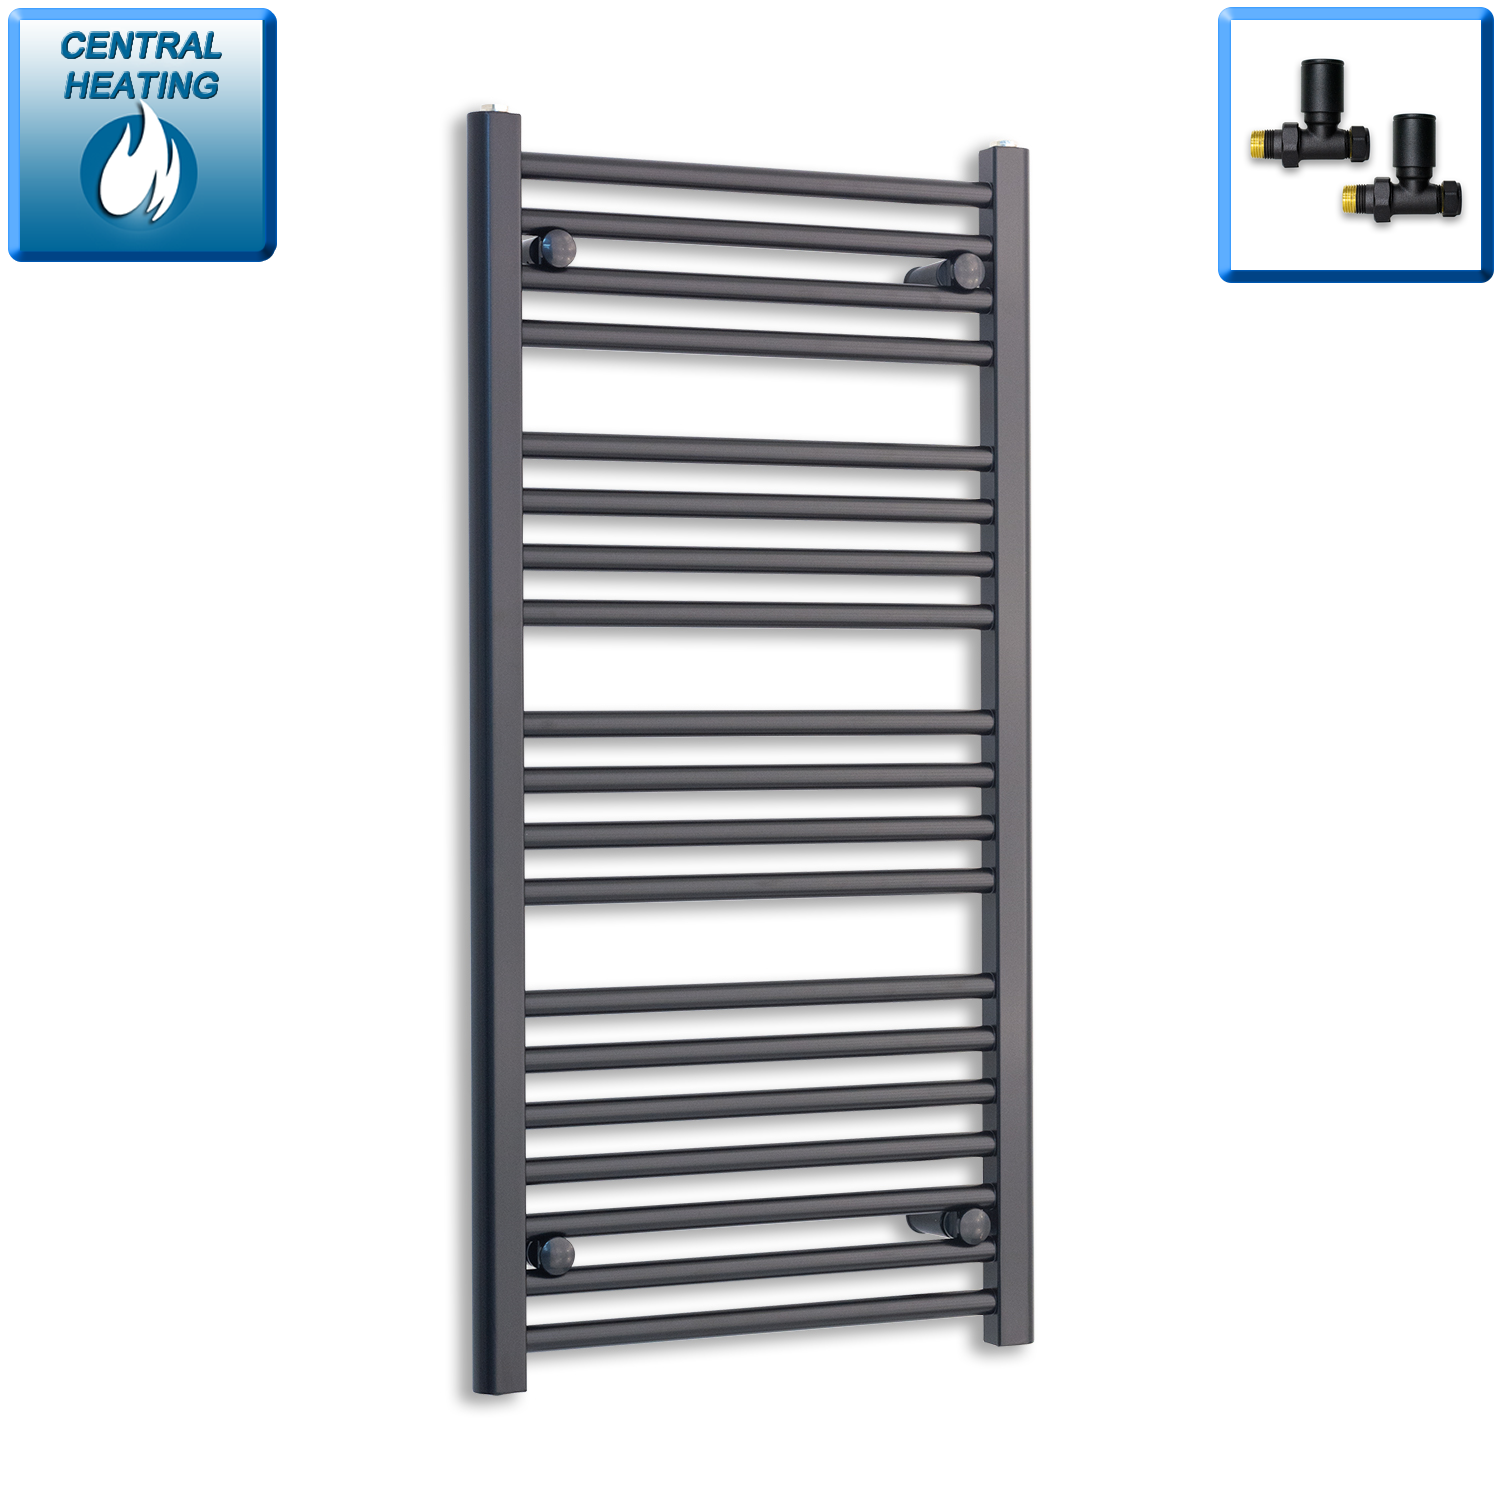 500mm Wide 1000mm High Black Towel Rail Radiator With Straight Valve